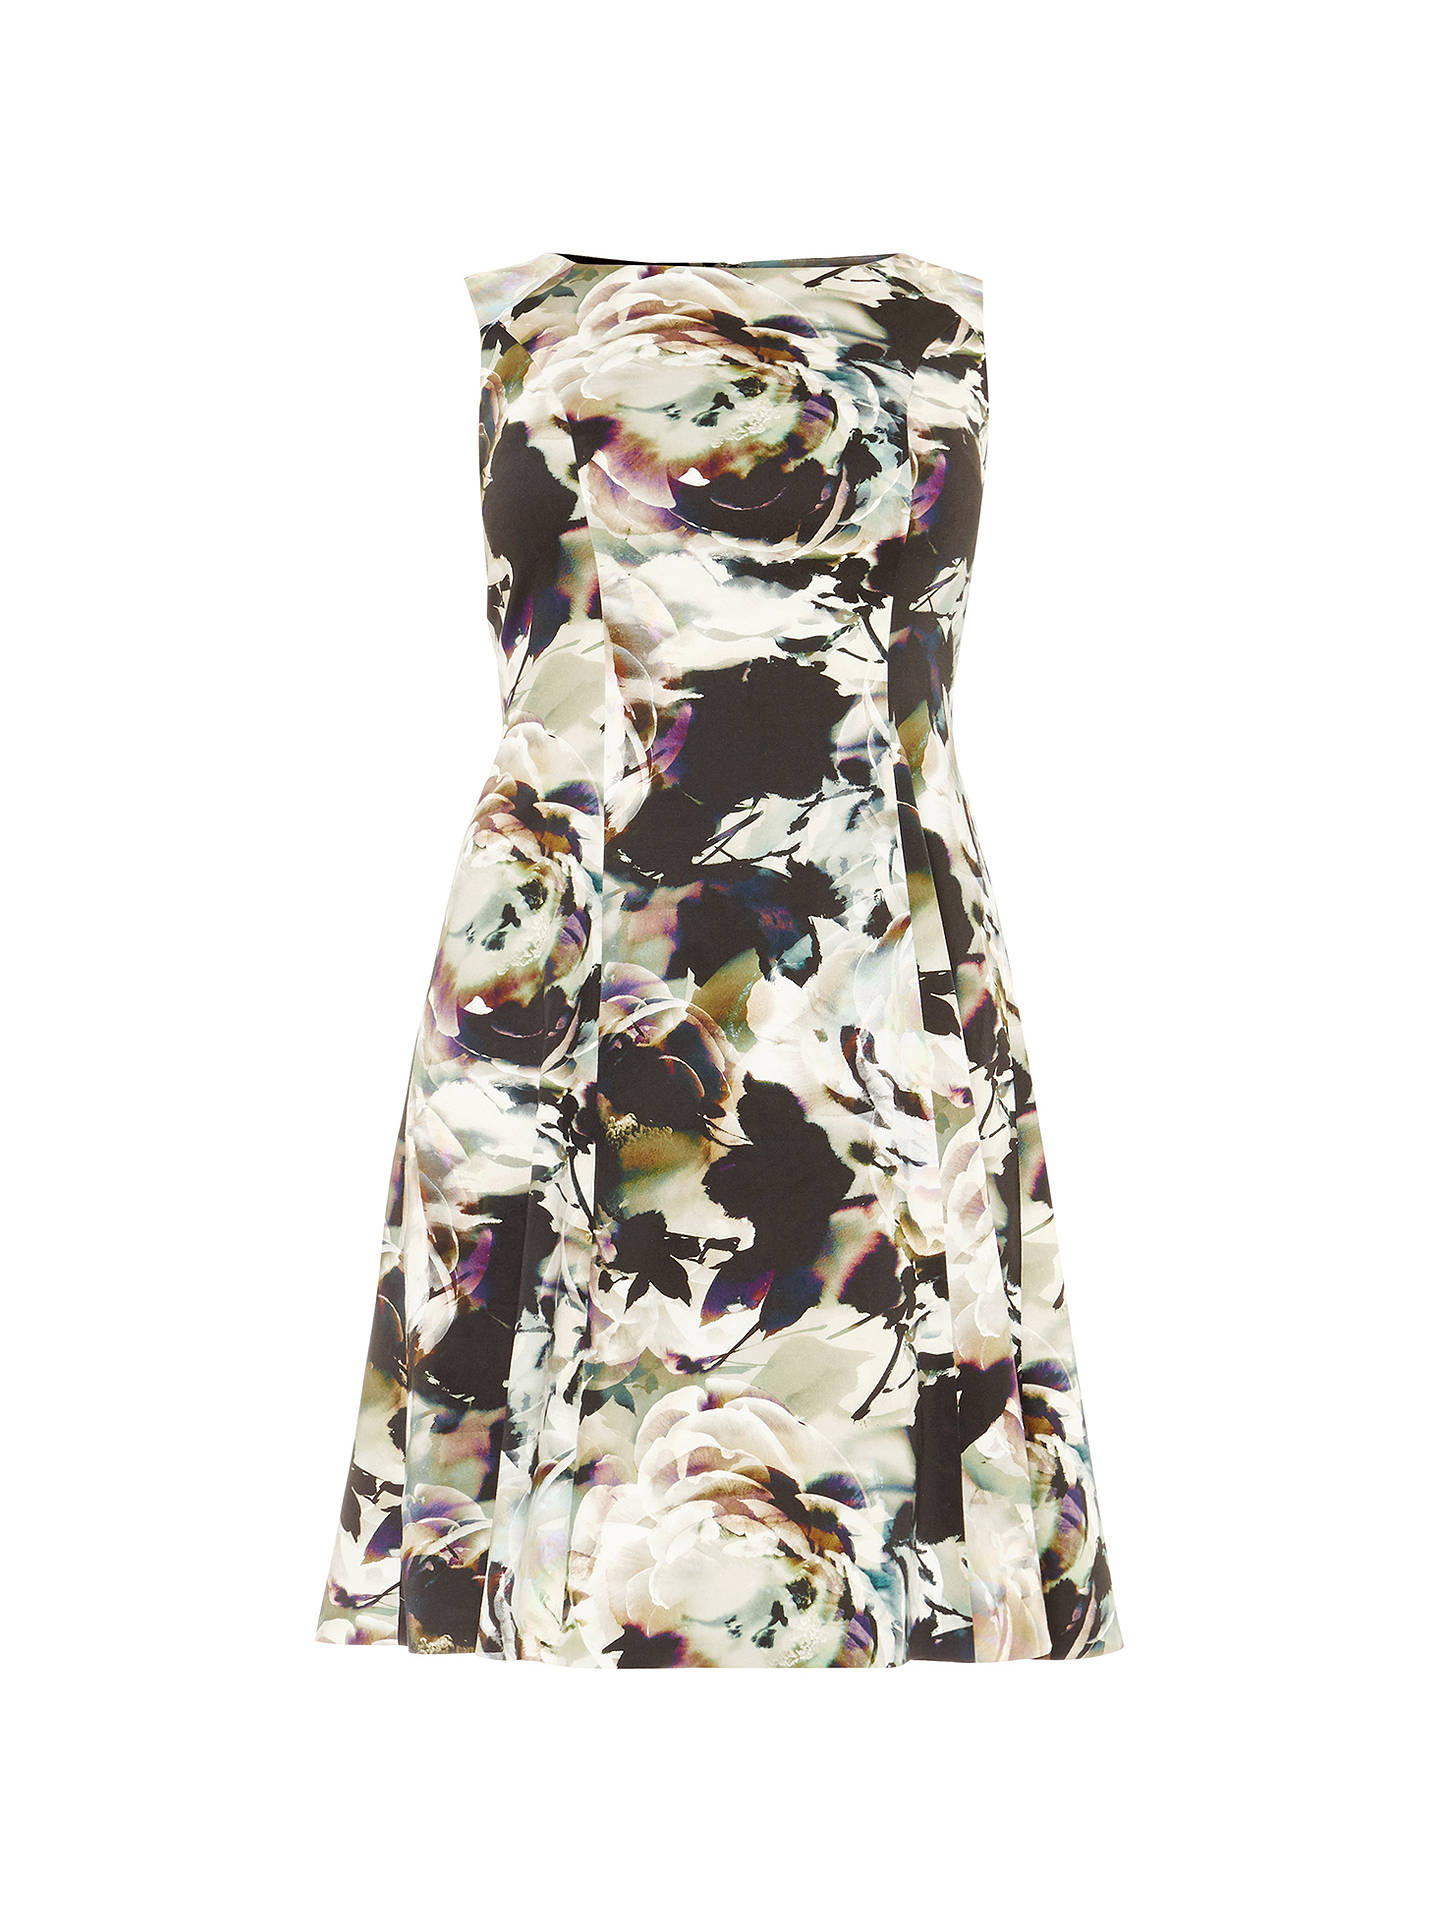 BuyStudio 8 Chantelle Dress, Multi, 12 Online at johnlewis.com